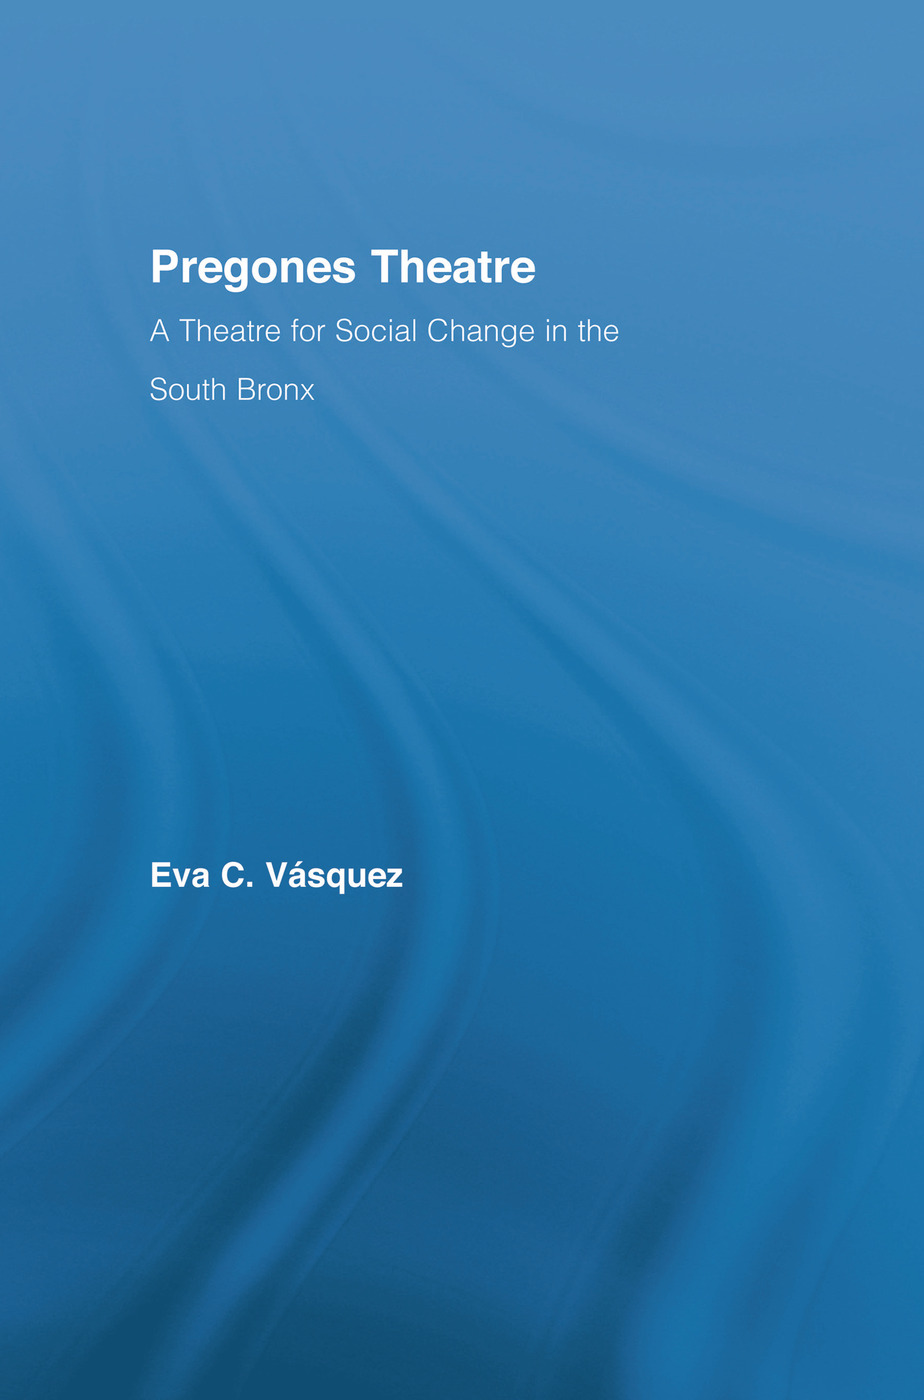 Pregones Theatre: A Theatre for Social Change in the South Bronx book cover